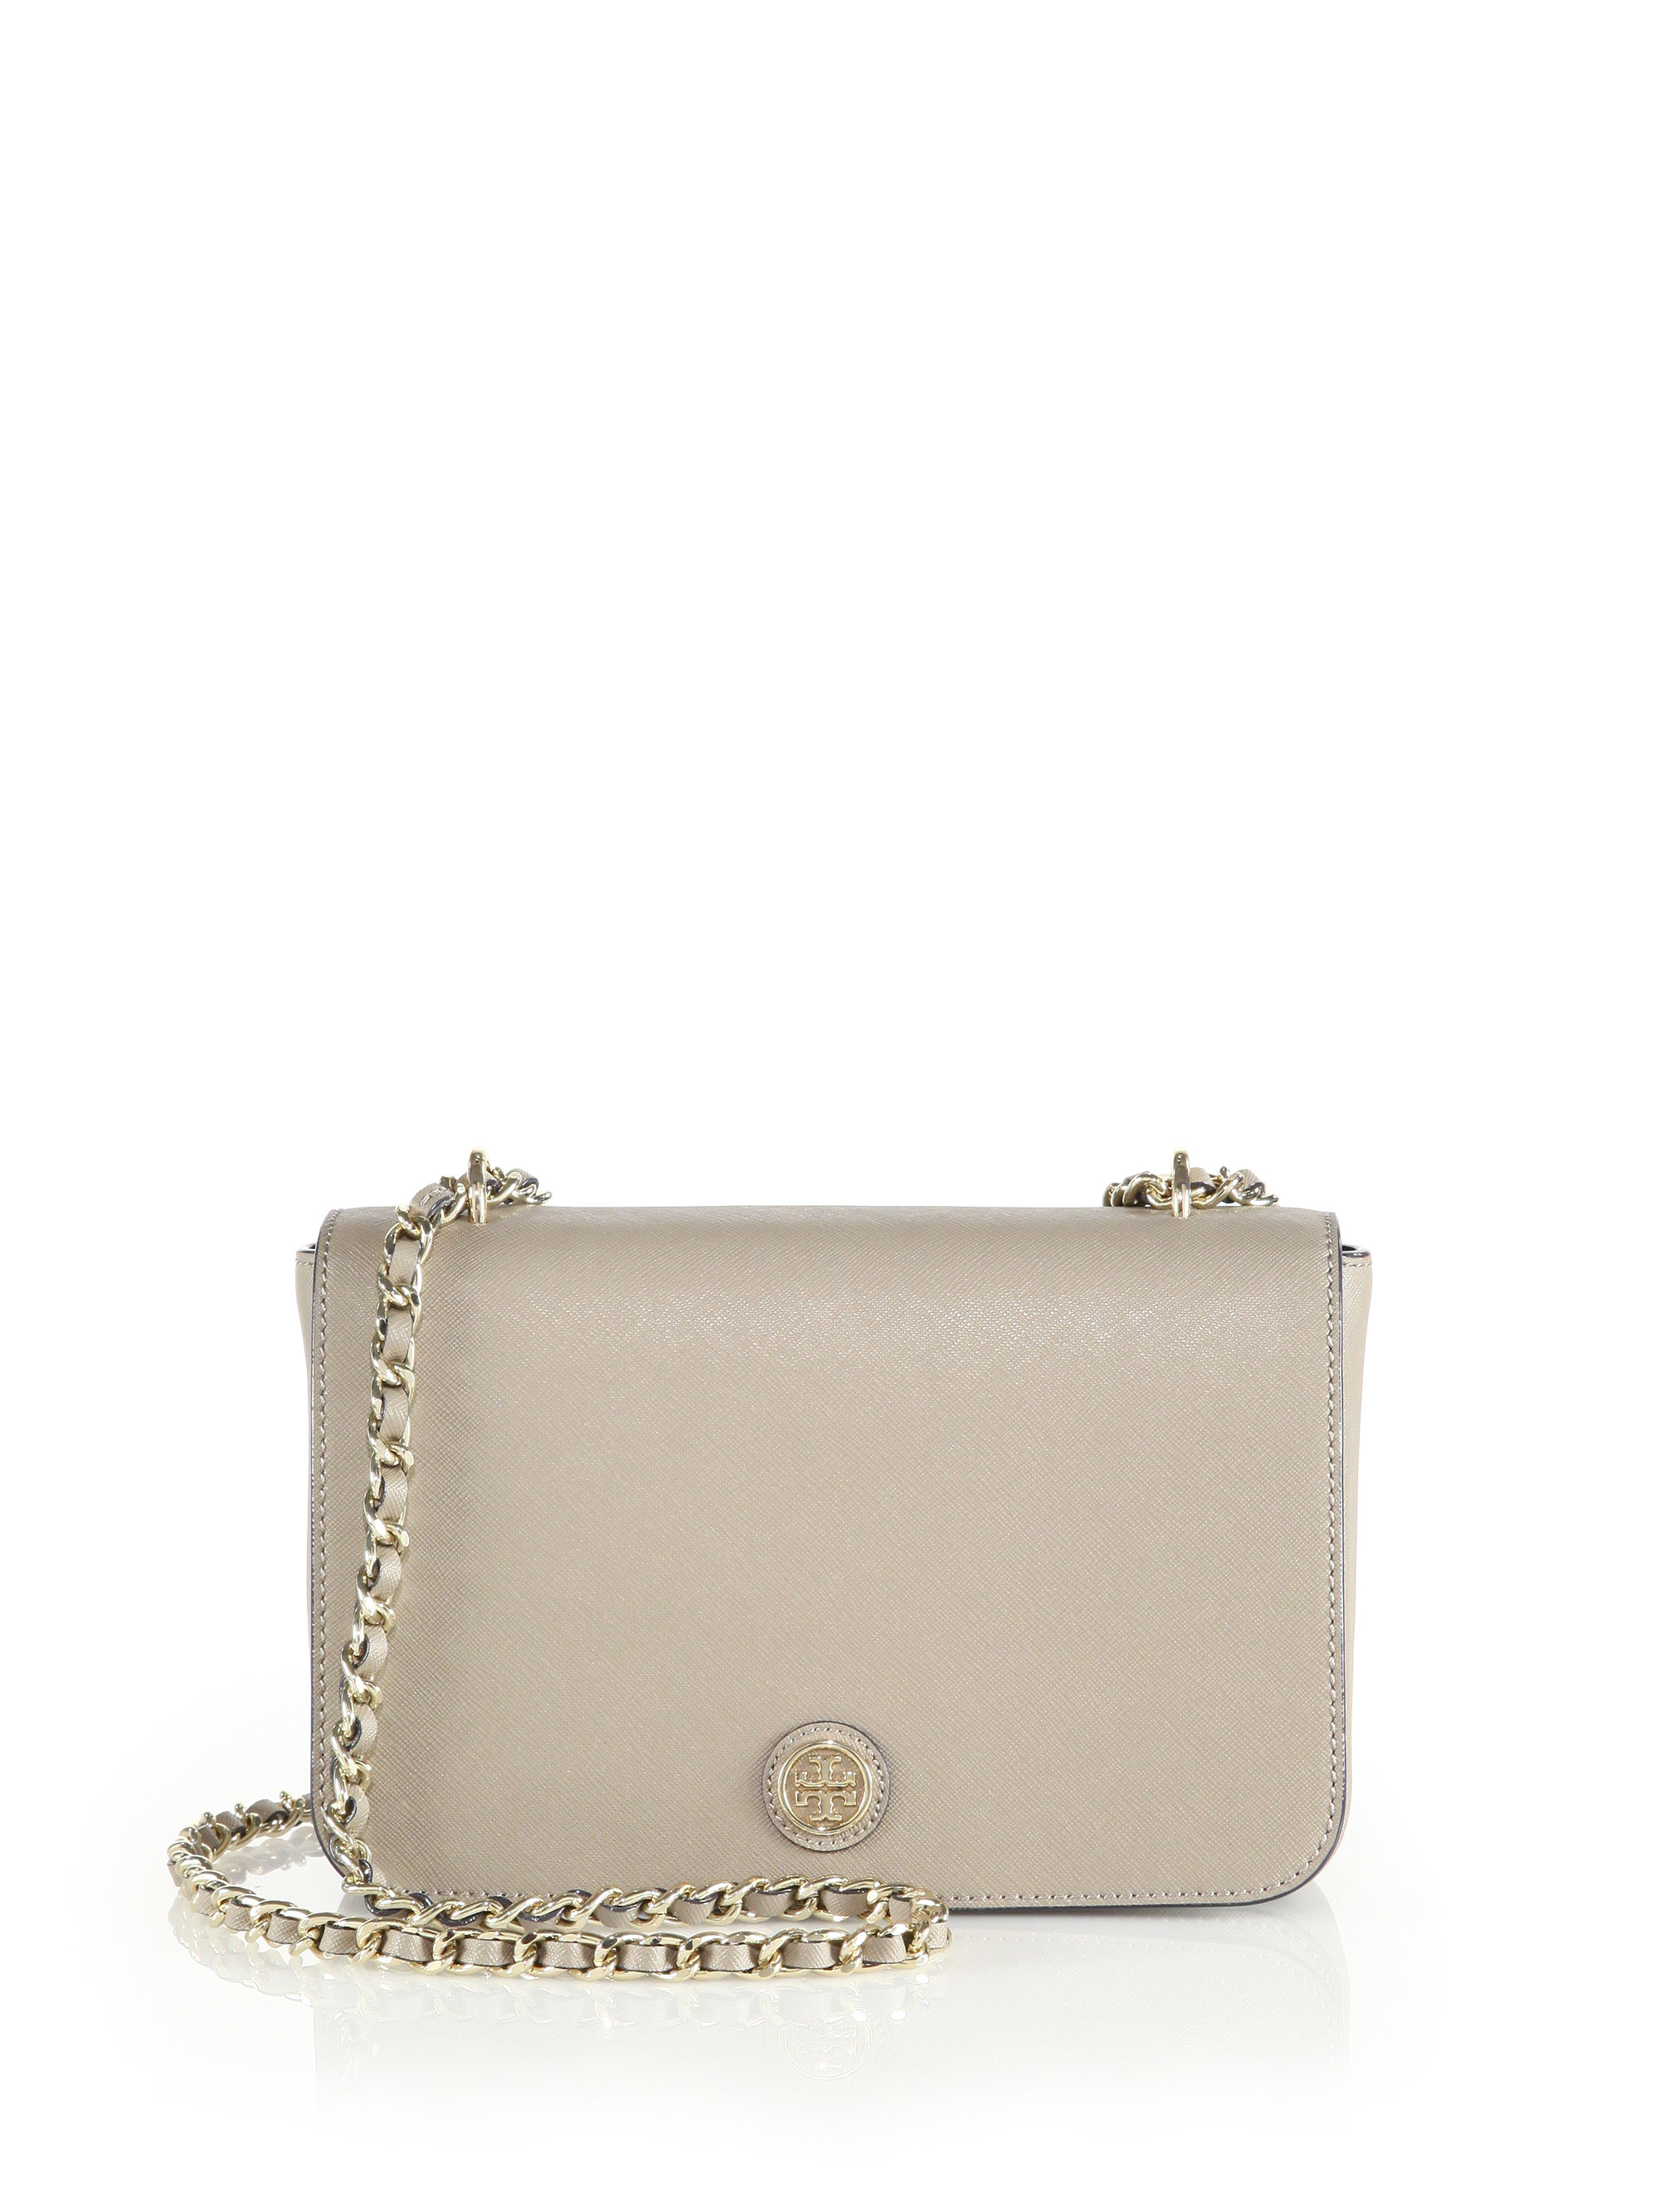 7b07328c4330 Lyst - Tory Burch Robinson Saffiano Leather Chain Shoulder Bag in Gray